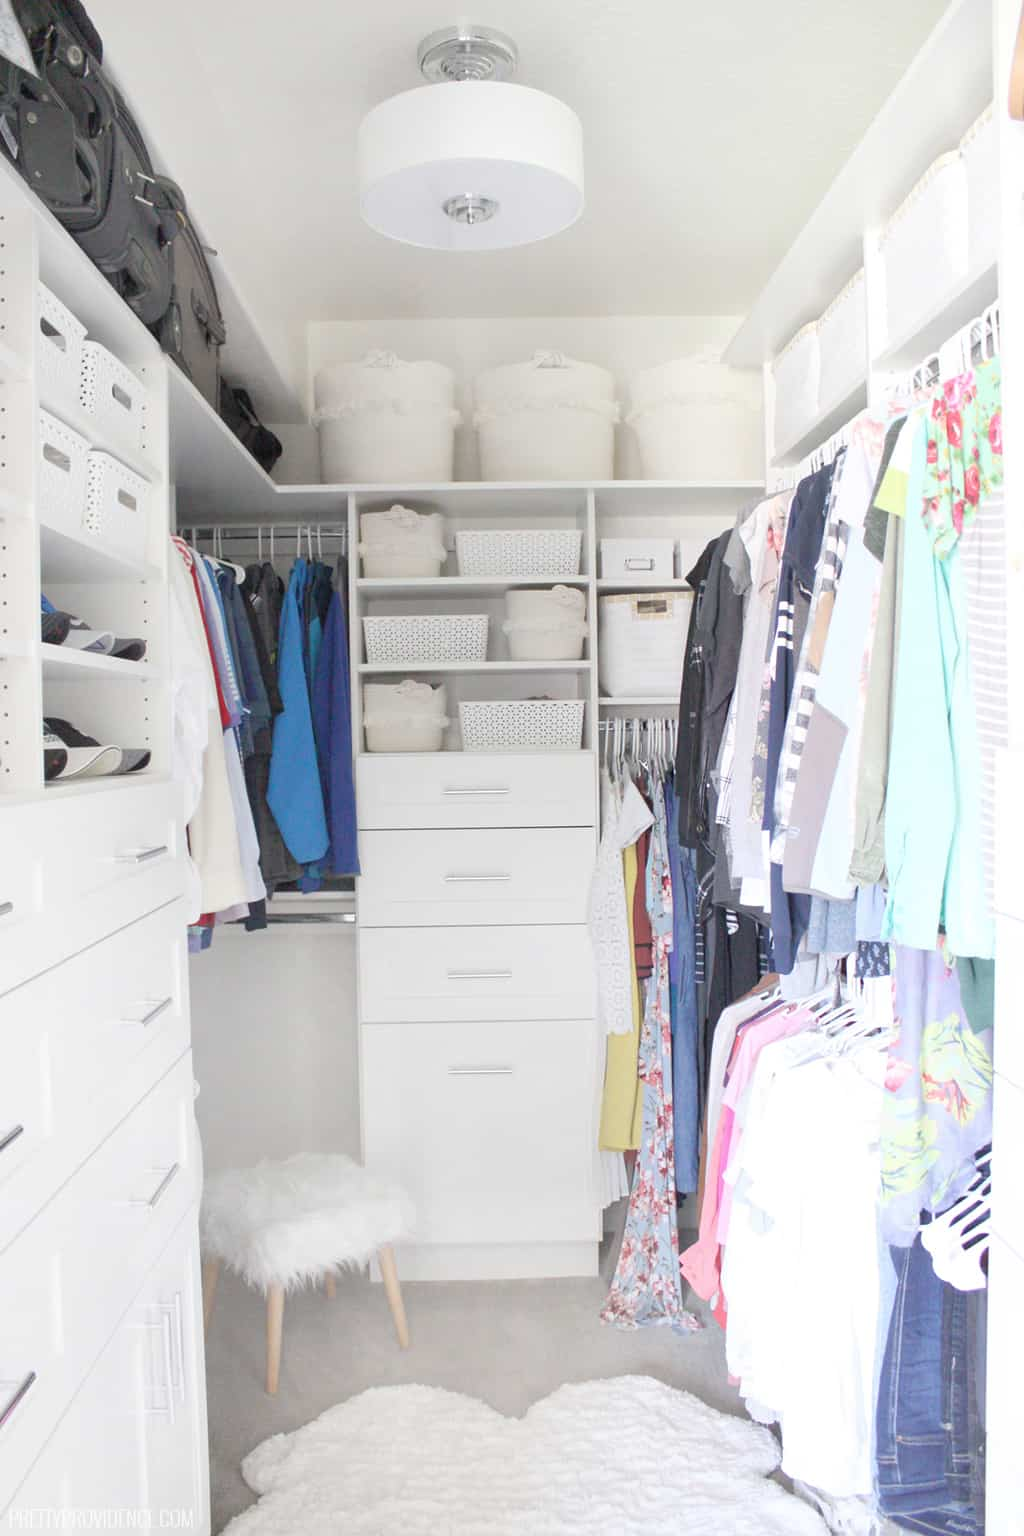 Fabulous walk in closet ideas! Our master closet used to be a complete mess of wasted space, but now it is beautiful, functional, and space saving!